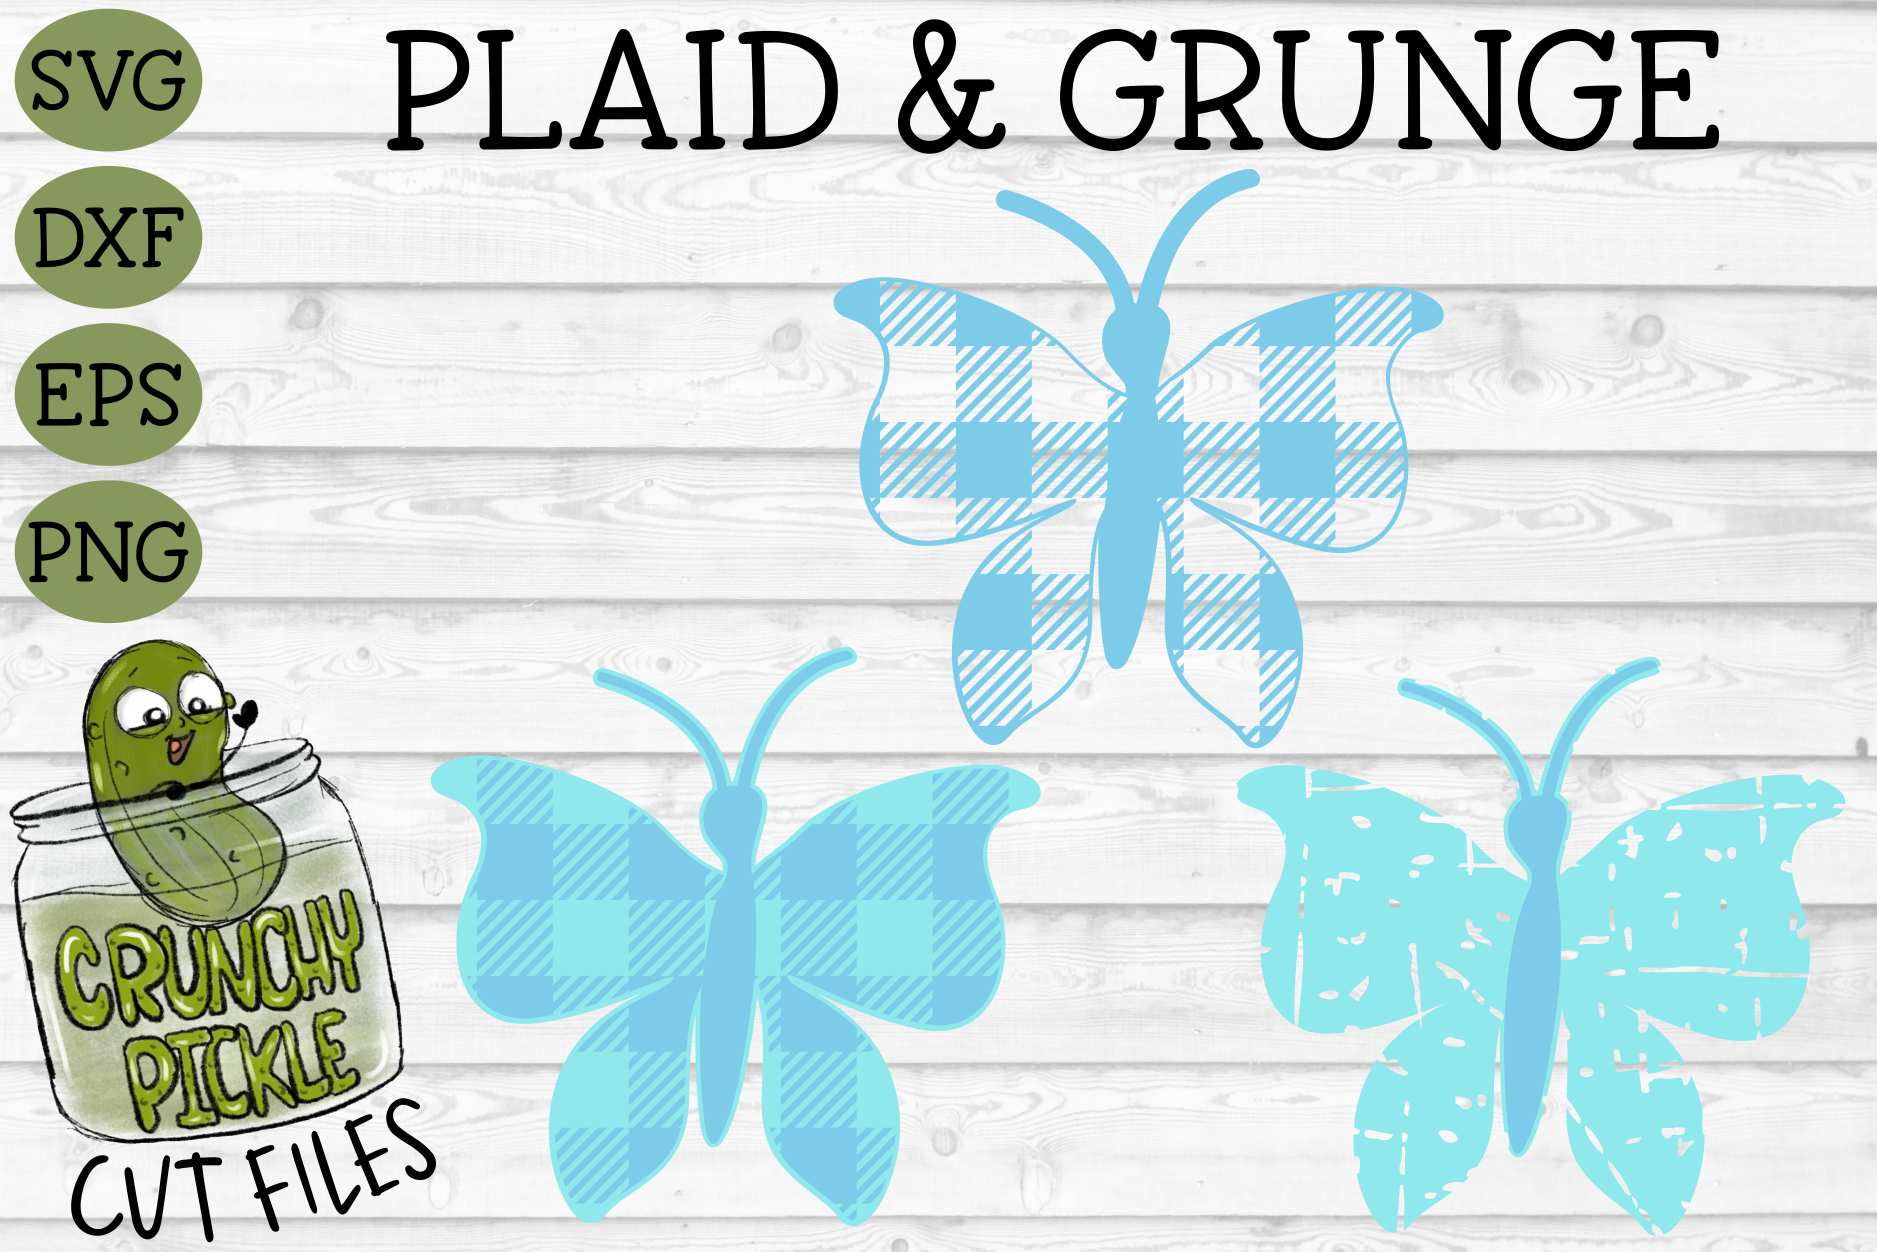 Plaid & Grunge Butterfly 1 SVG Cut File example image 1